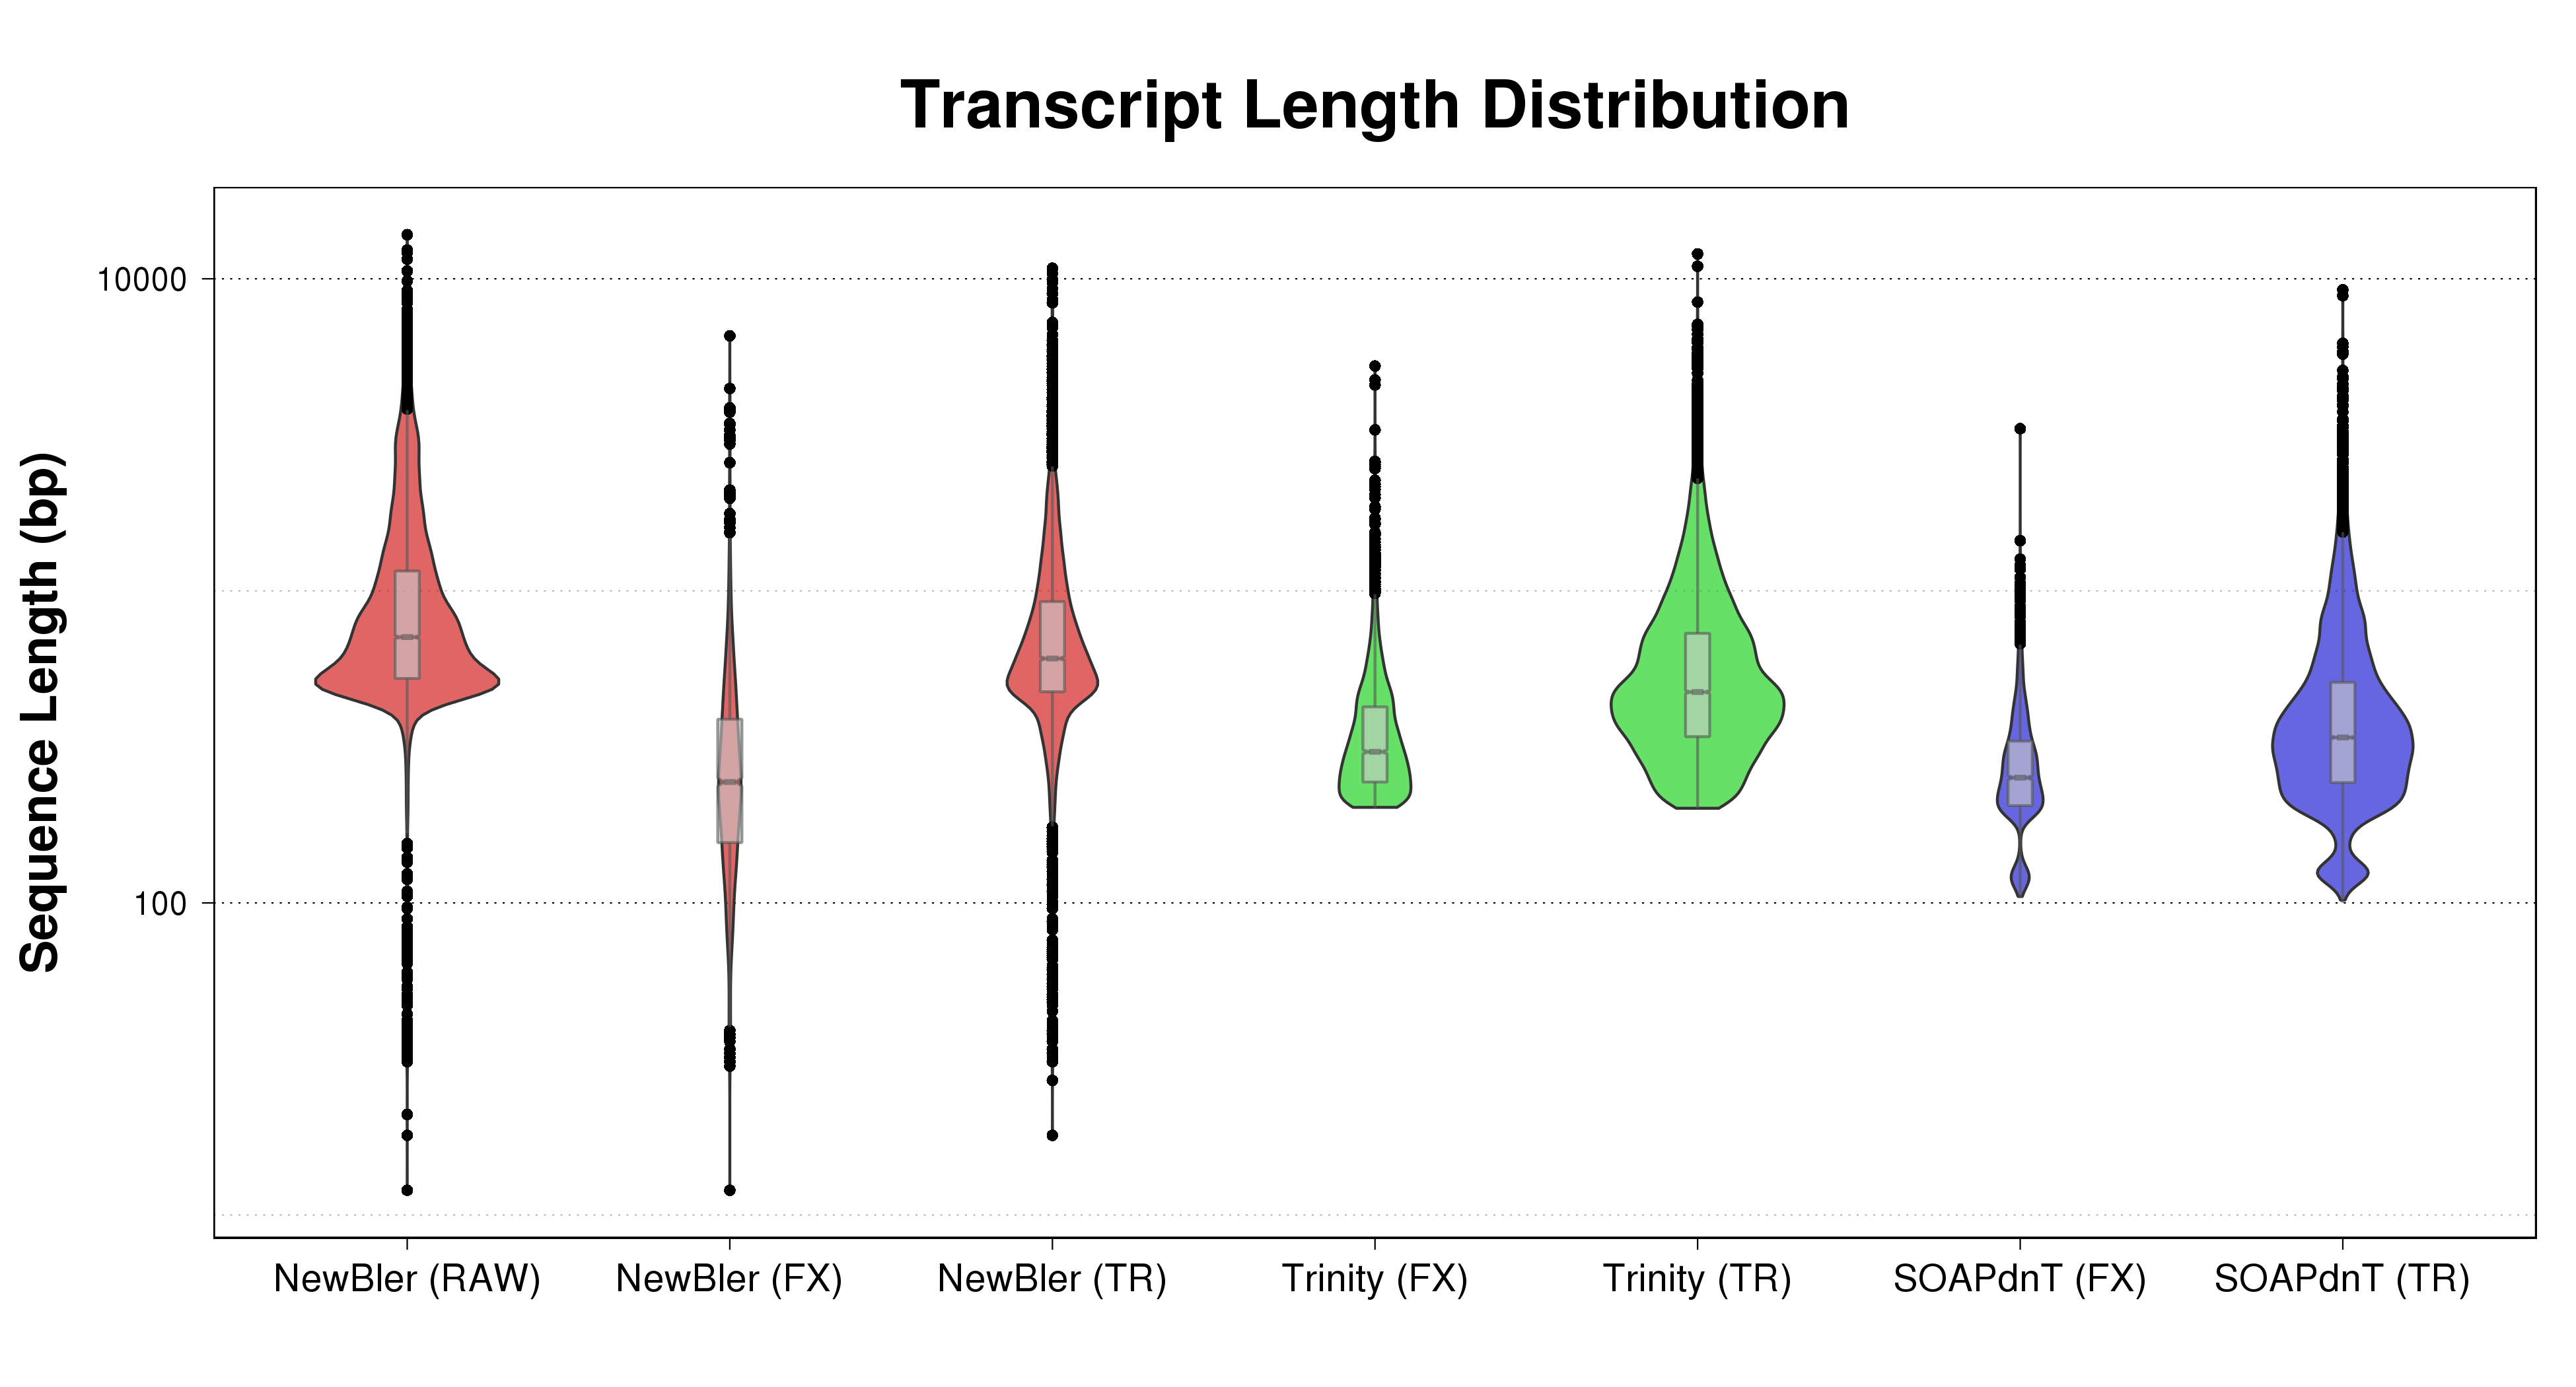 Violinplot_summary_transcript_length_distribution